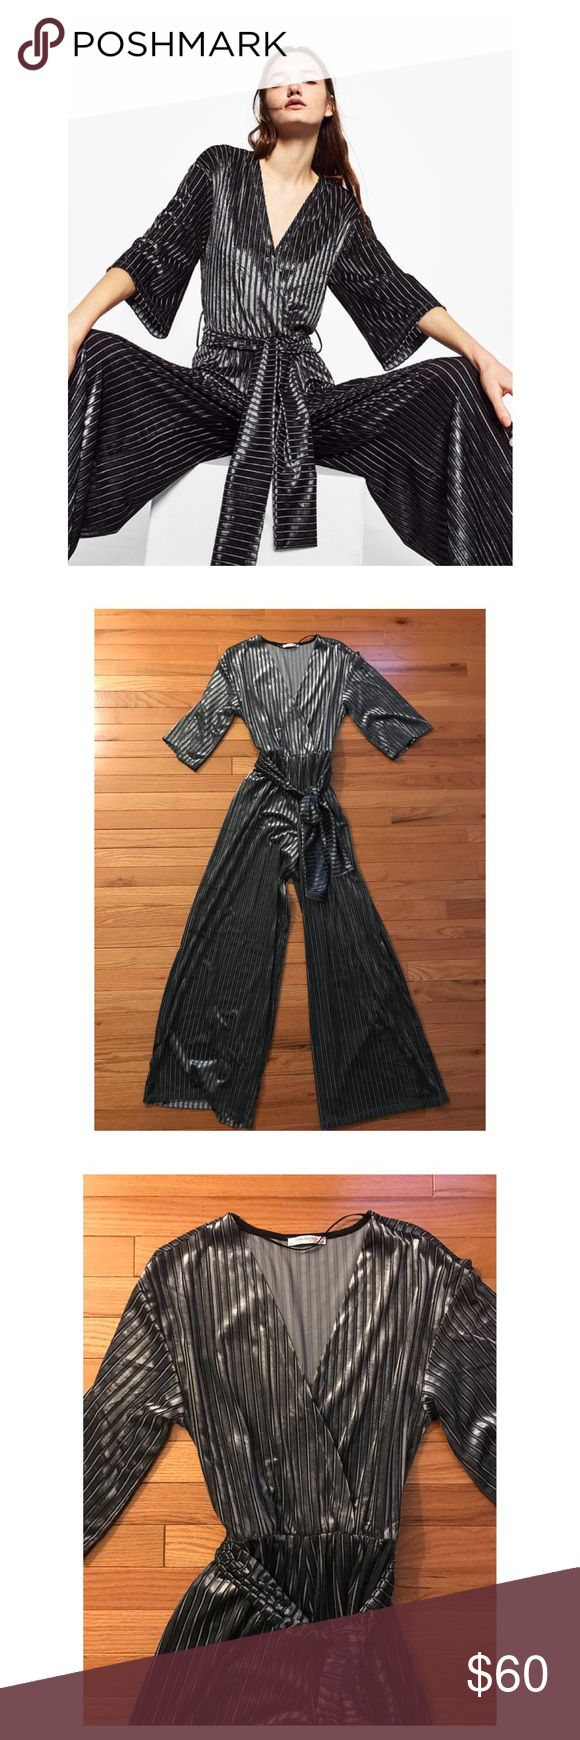 Zara Velvet Stripe Jumpsuit - Medium Blue-ish grey velvet stripe jumpsuit by Zara. Wide leg, with wide sleeve to get your David Bowie on. Snap closure at cross over adds a little more chest coverage. Fabric belt. Excellent condition- only worn once for a few hours. Offers welcome! Zara Pants Jumpsuits & Rompers